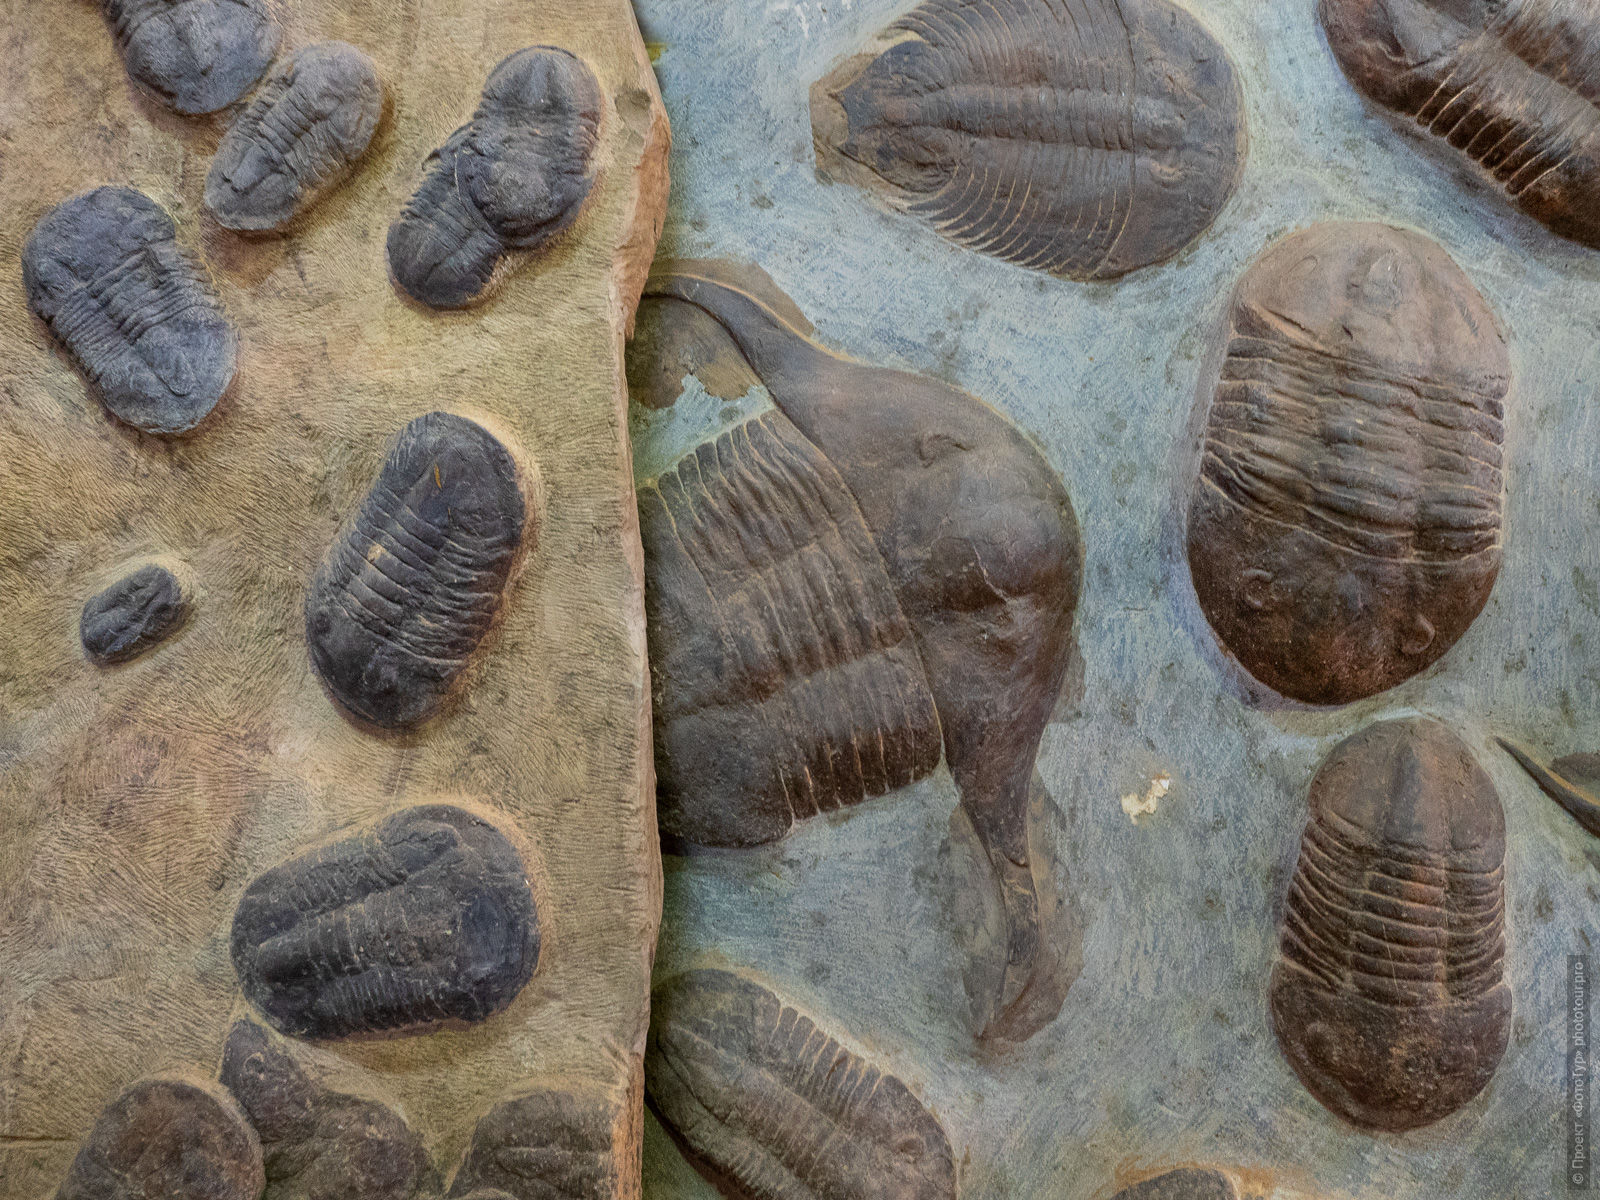 Plate with trilobites, Merzouga. Adventure photo tour: medina, cascades, sands and ports of Morocco, April 4 - 17, 2020.